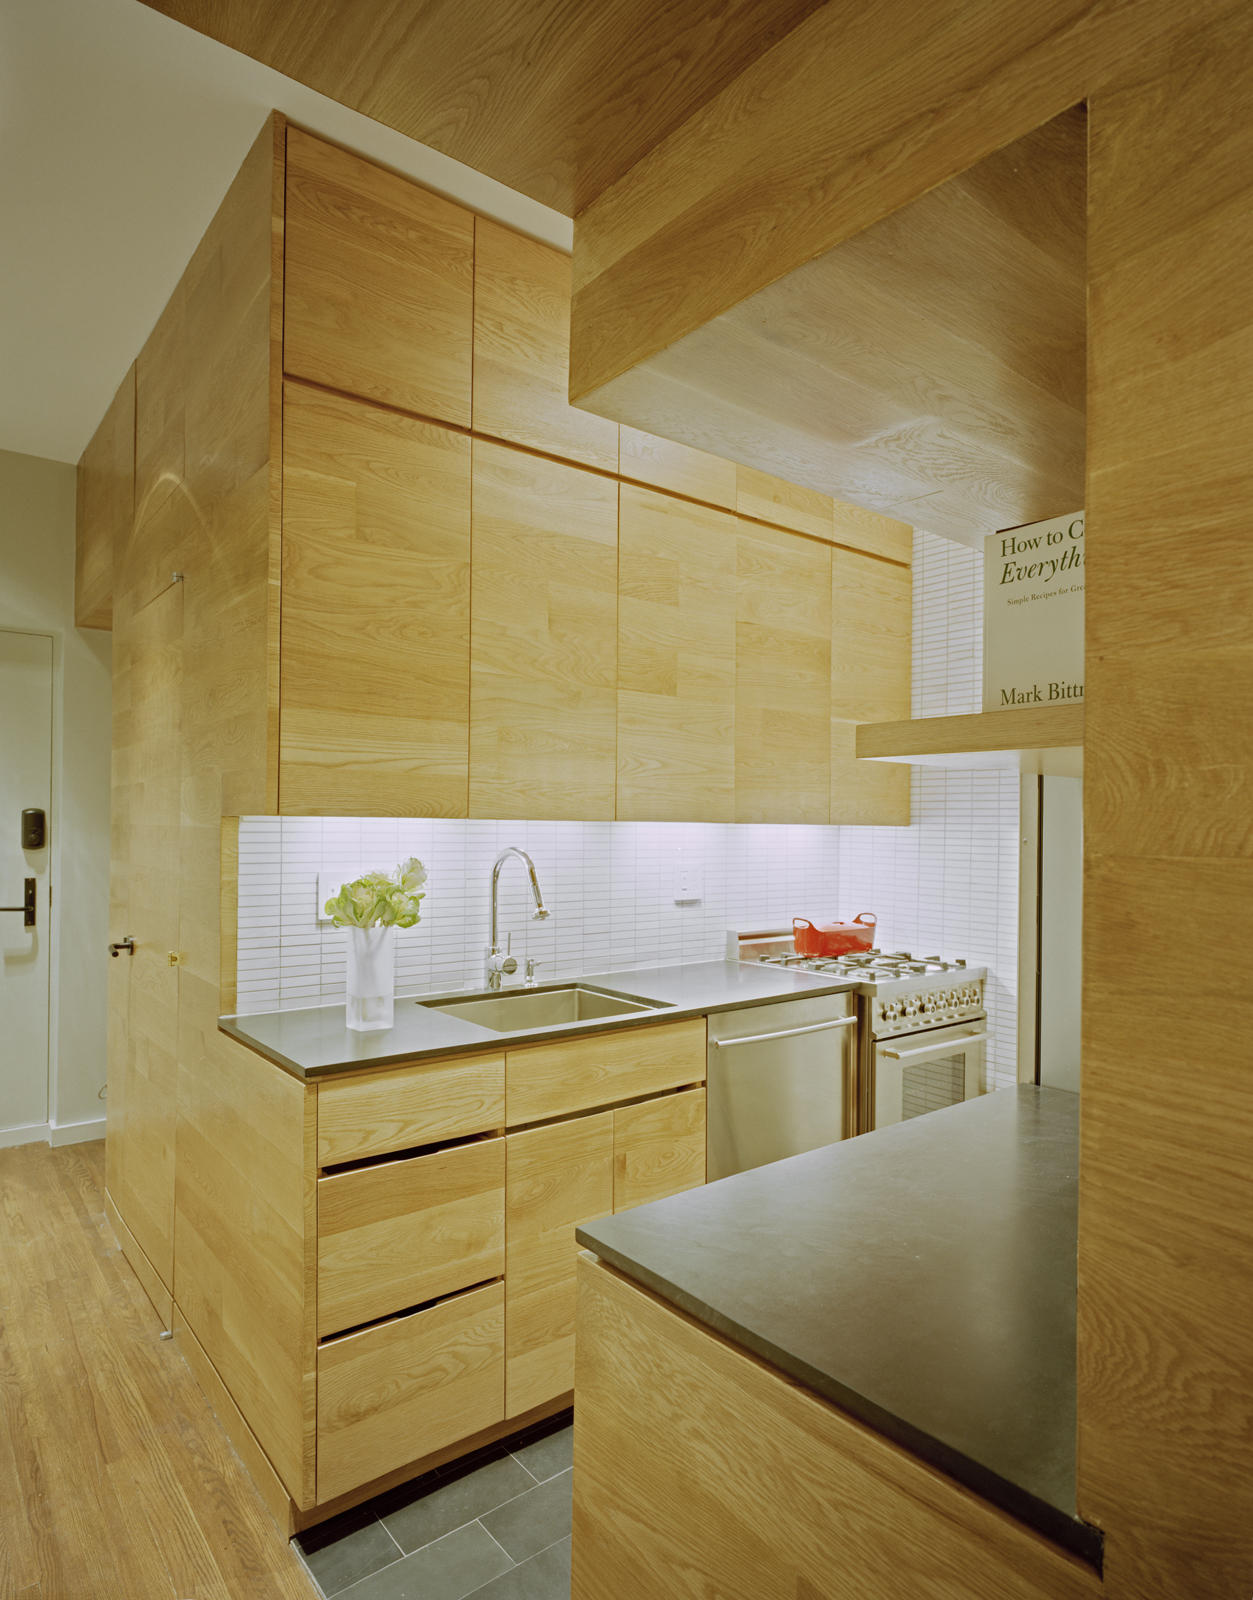 Space saving tiny apartment new york for Tiny apartment kitchen solutions